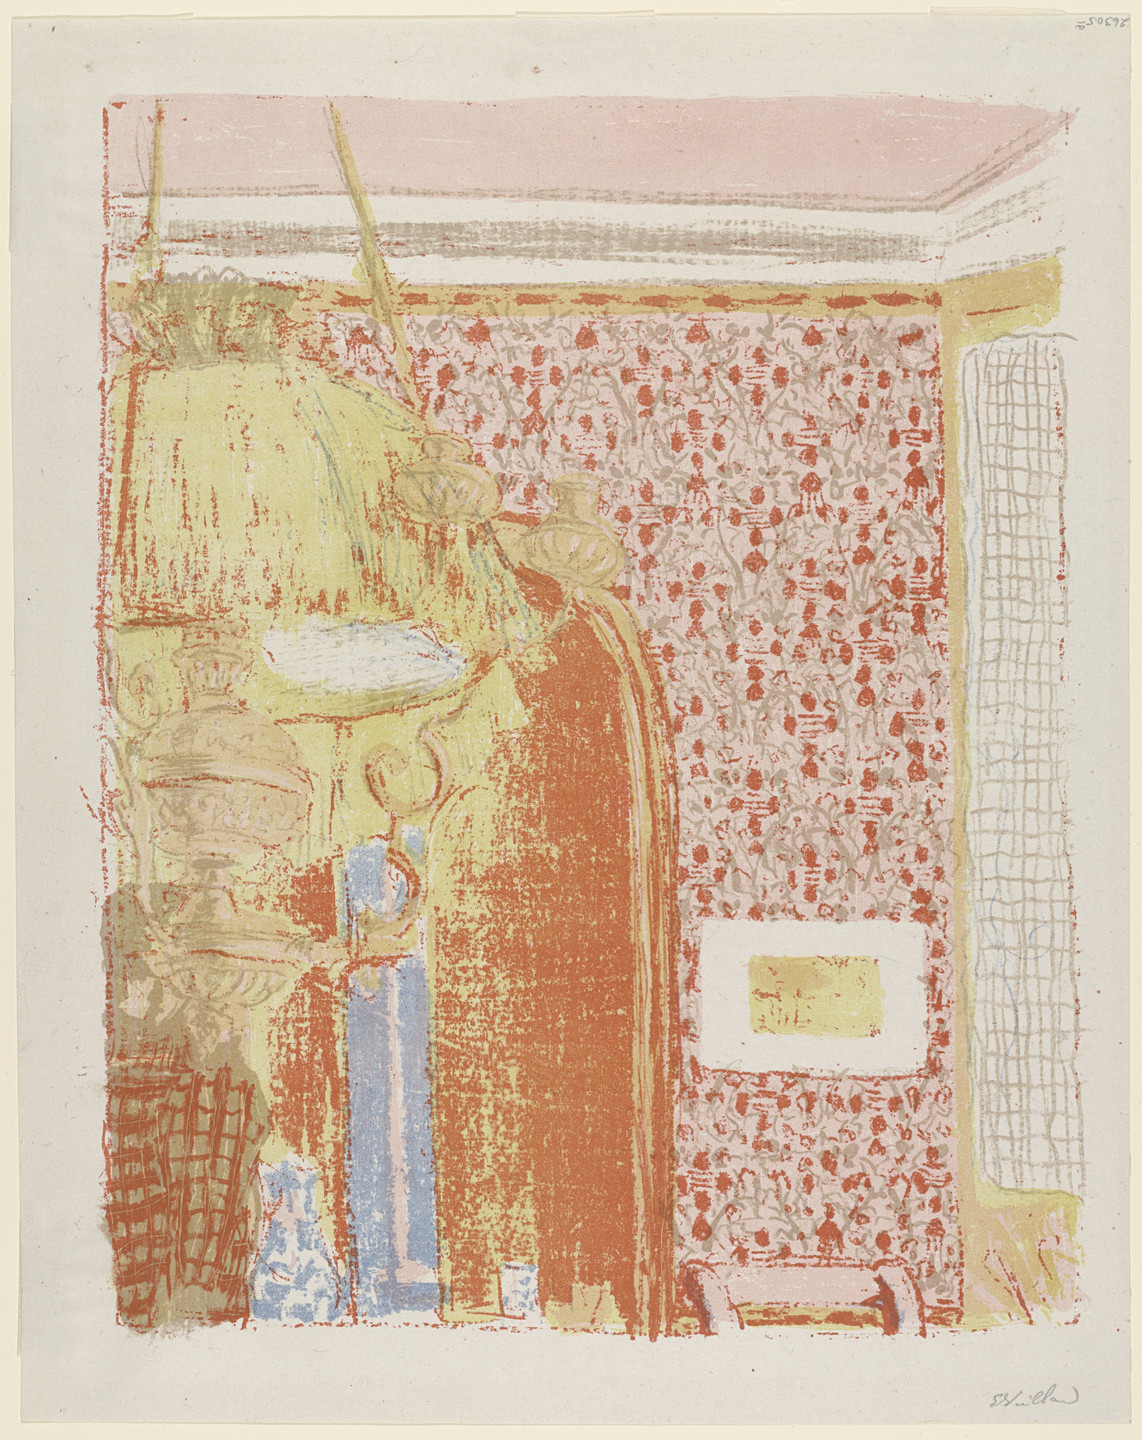 Édouard Vuillard. Interior with Pink Wallpaper II (Intérieur aux tentures roses II) from Landscapes and Interiors (Paysages et intérieurs). 1899